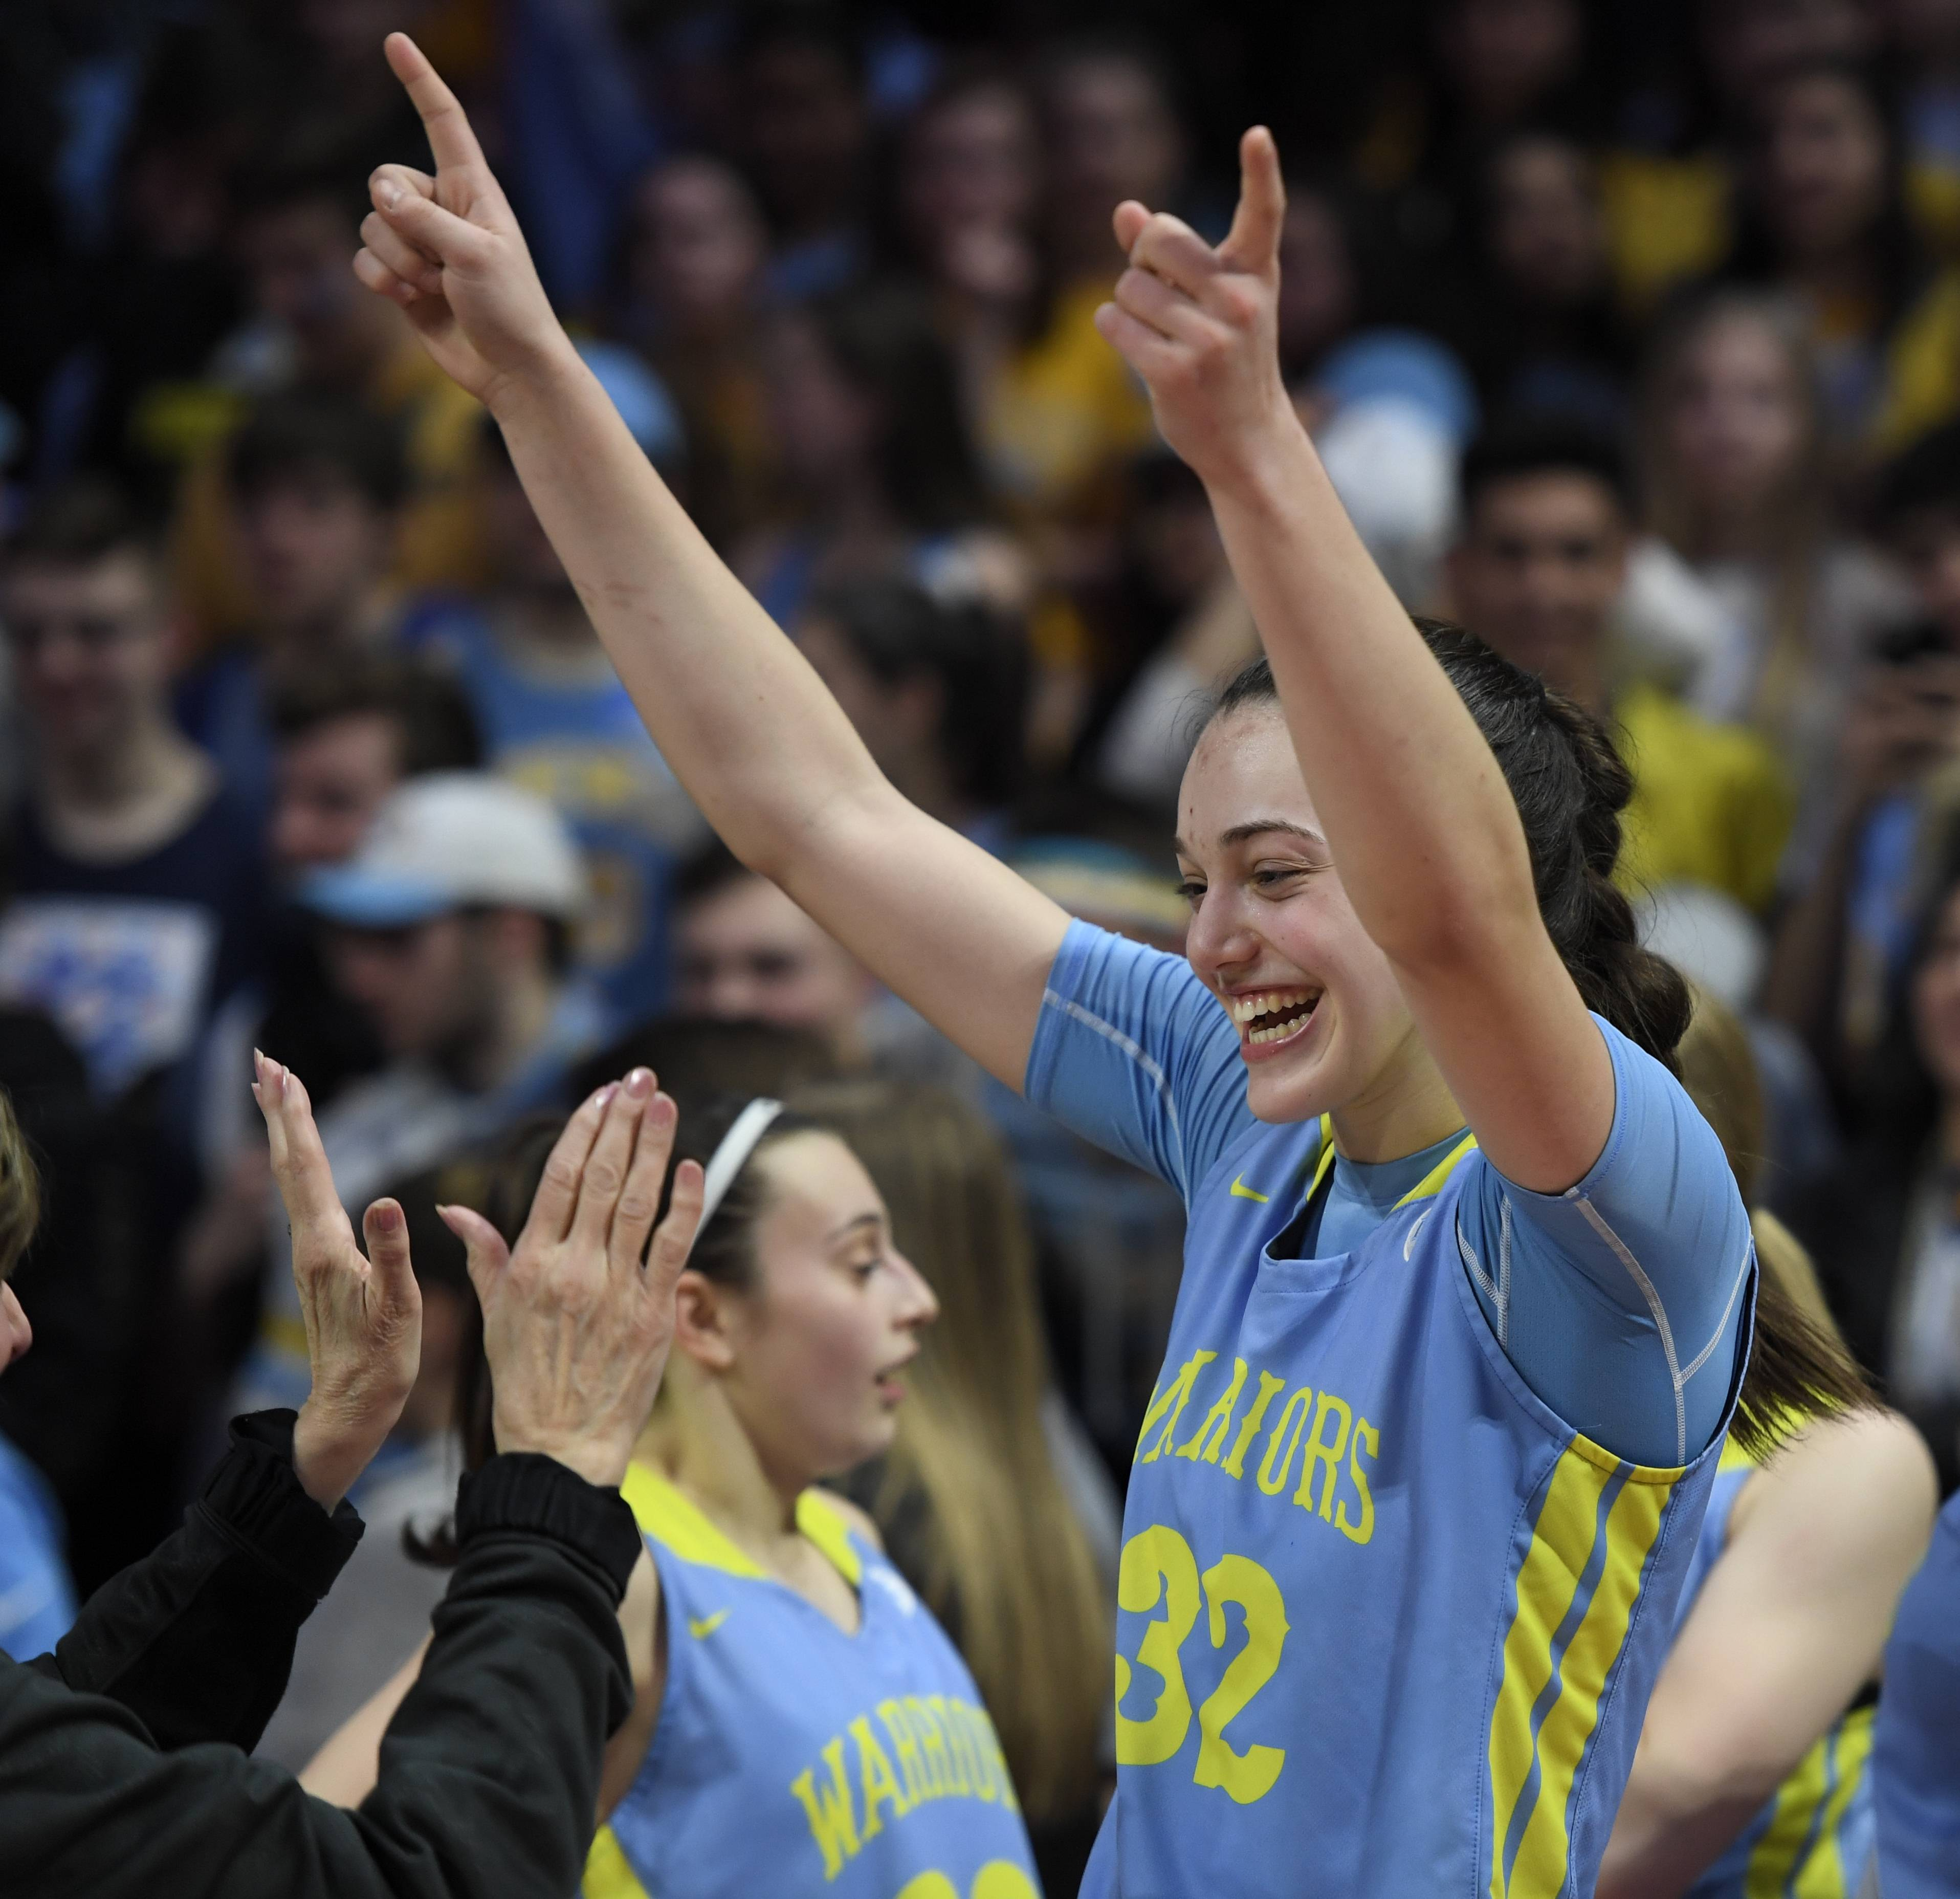 Maine West junior Angela Dugalic has committed to the University of Oregon.